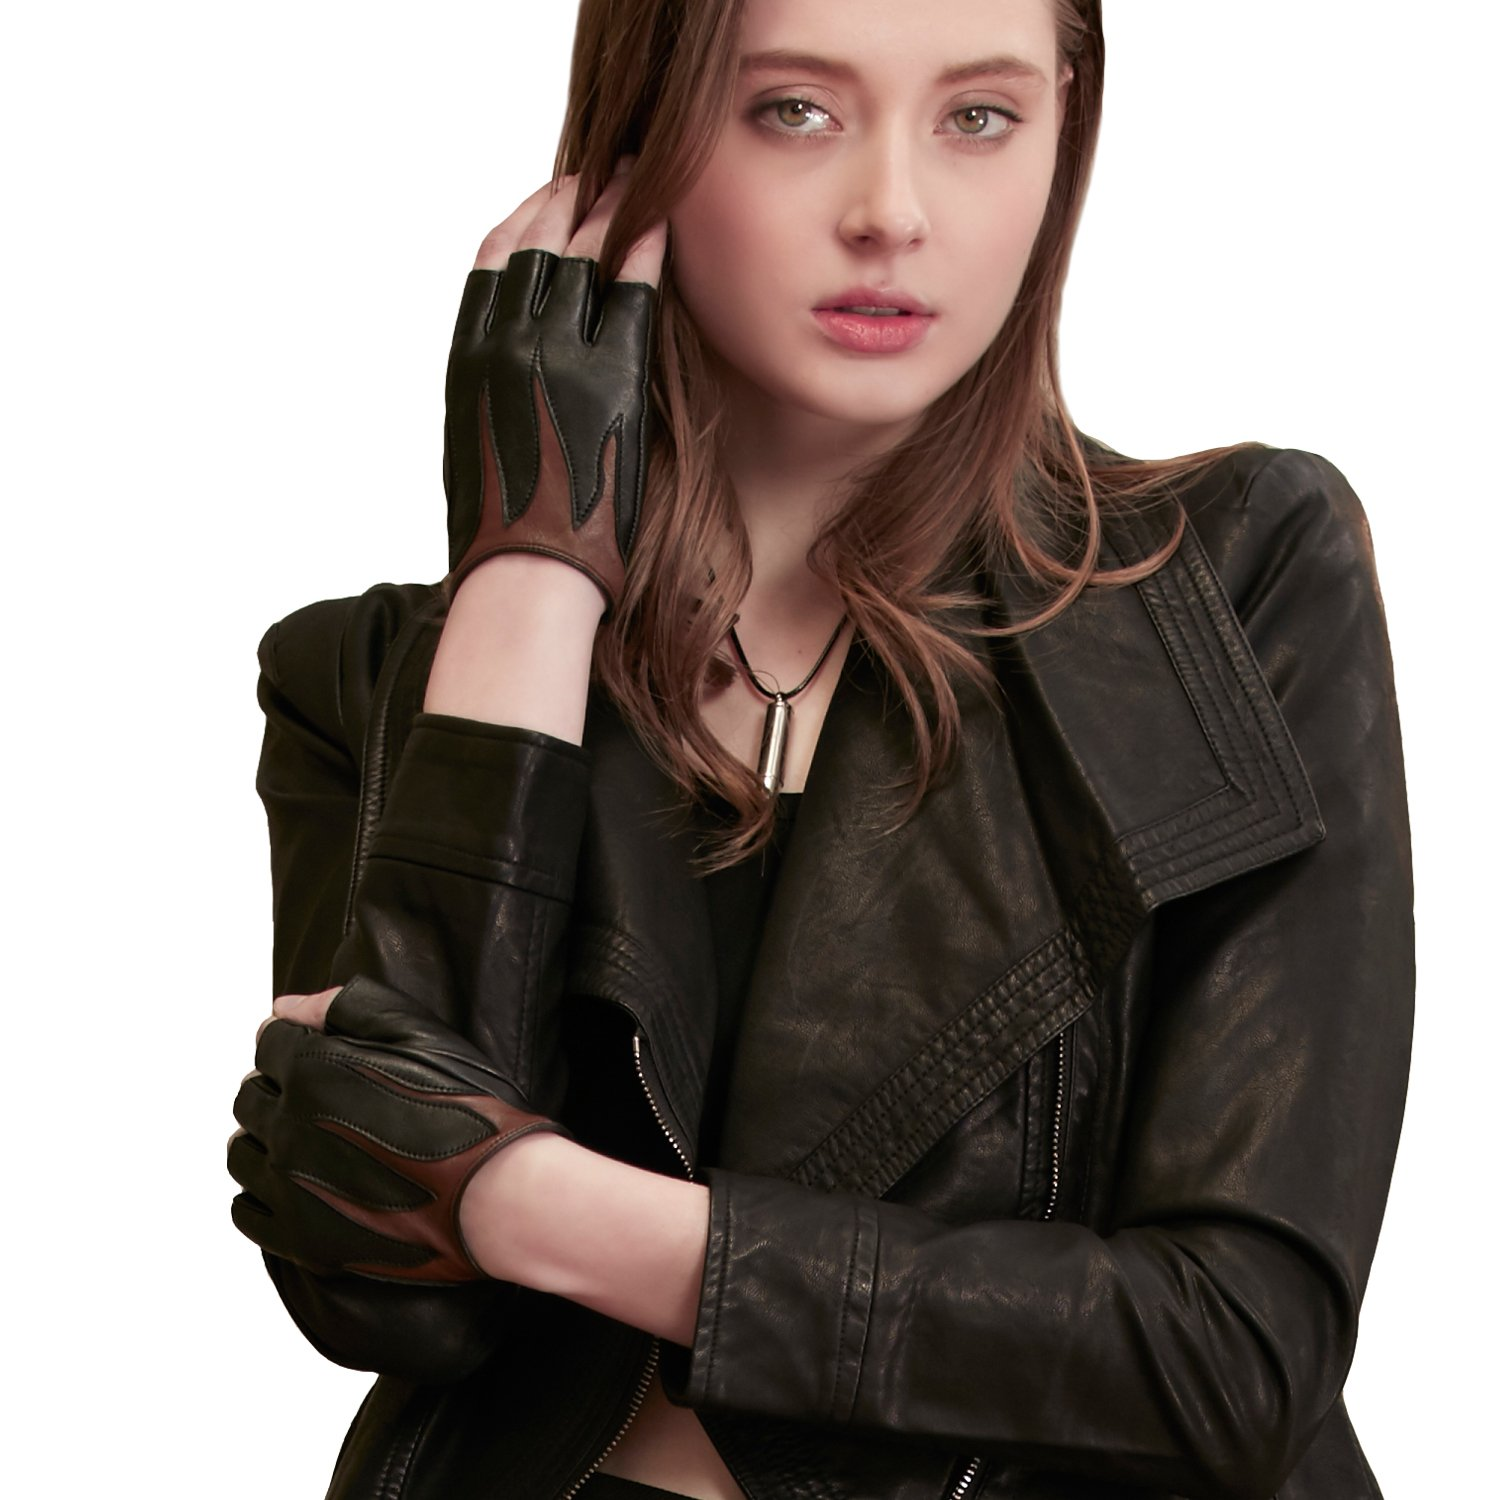 GSG Two-tone Fire Pattern Womens Fingerless Gloves Stylish Genuine Leather Half Finger Driving Gloves Party Dance Show Black 7.5